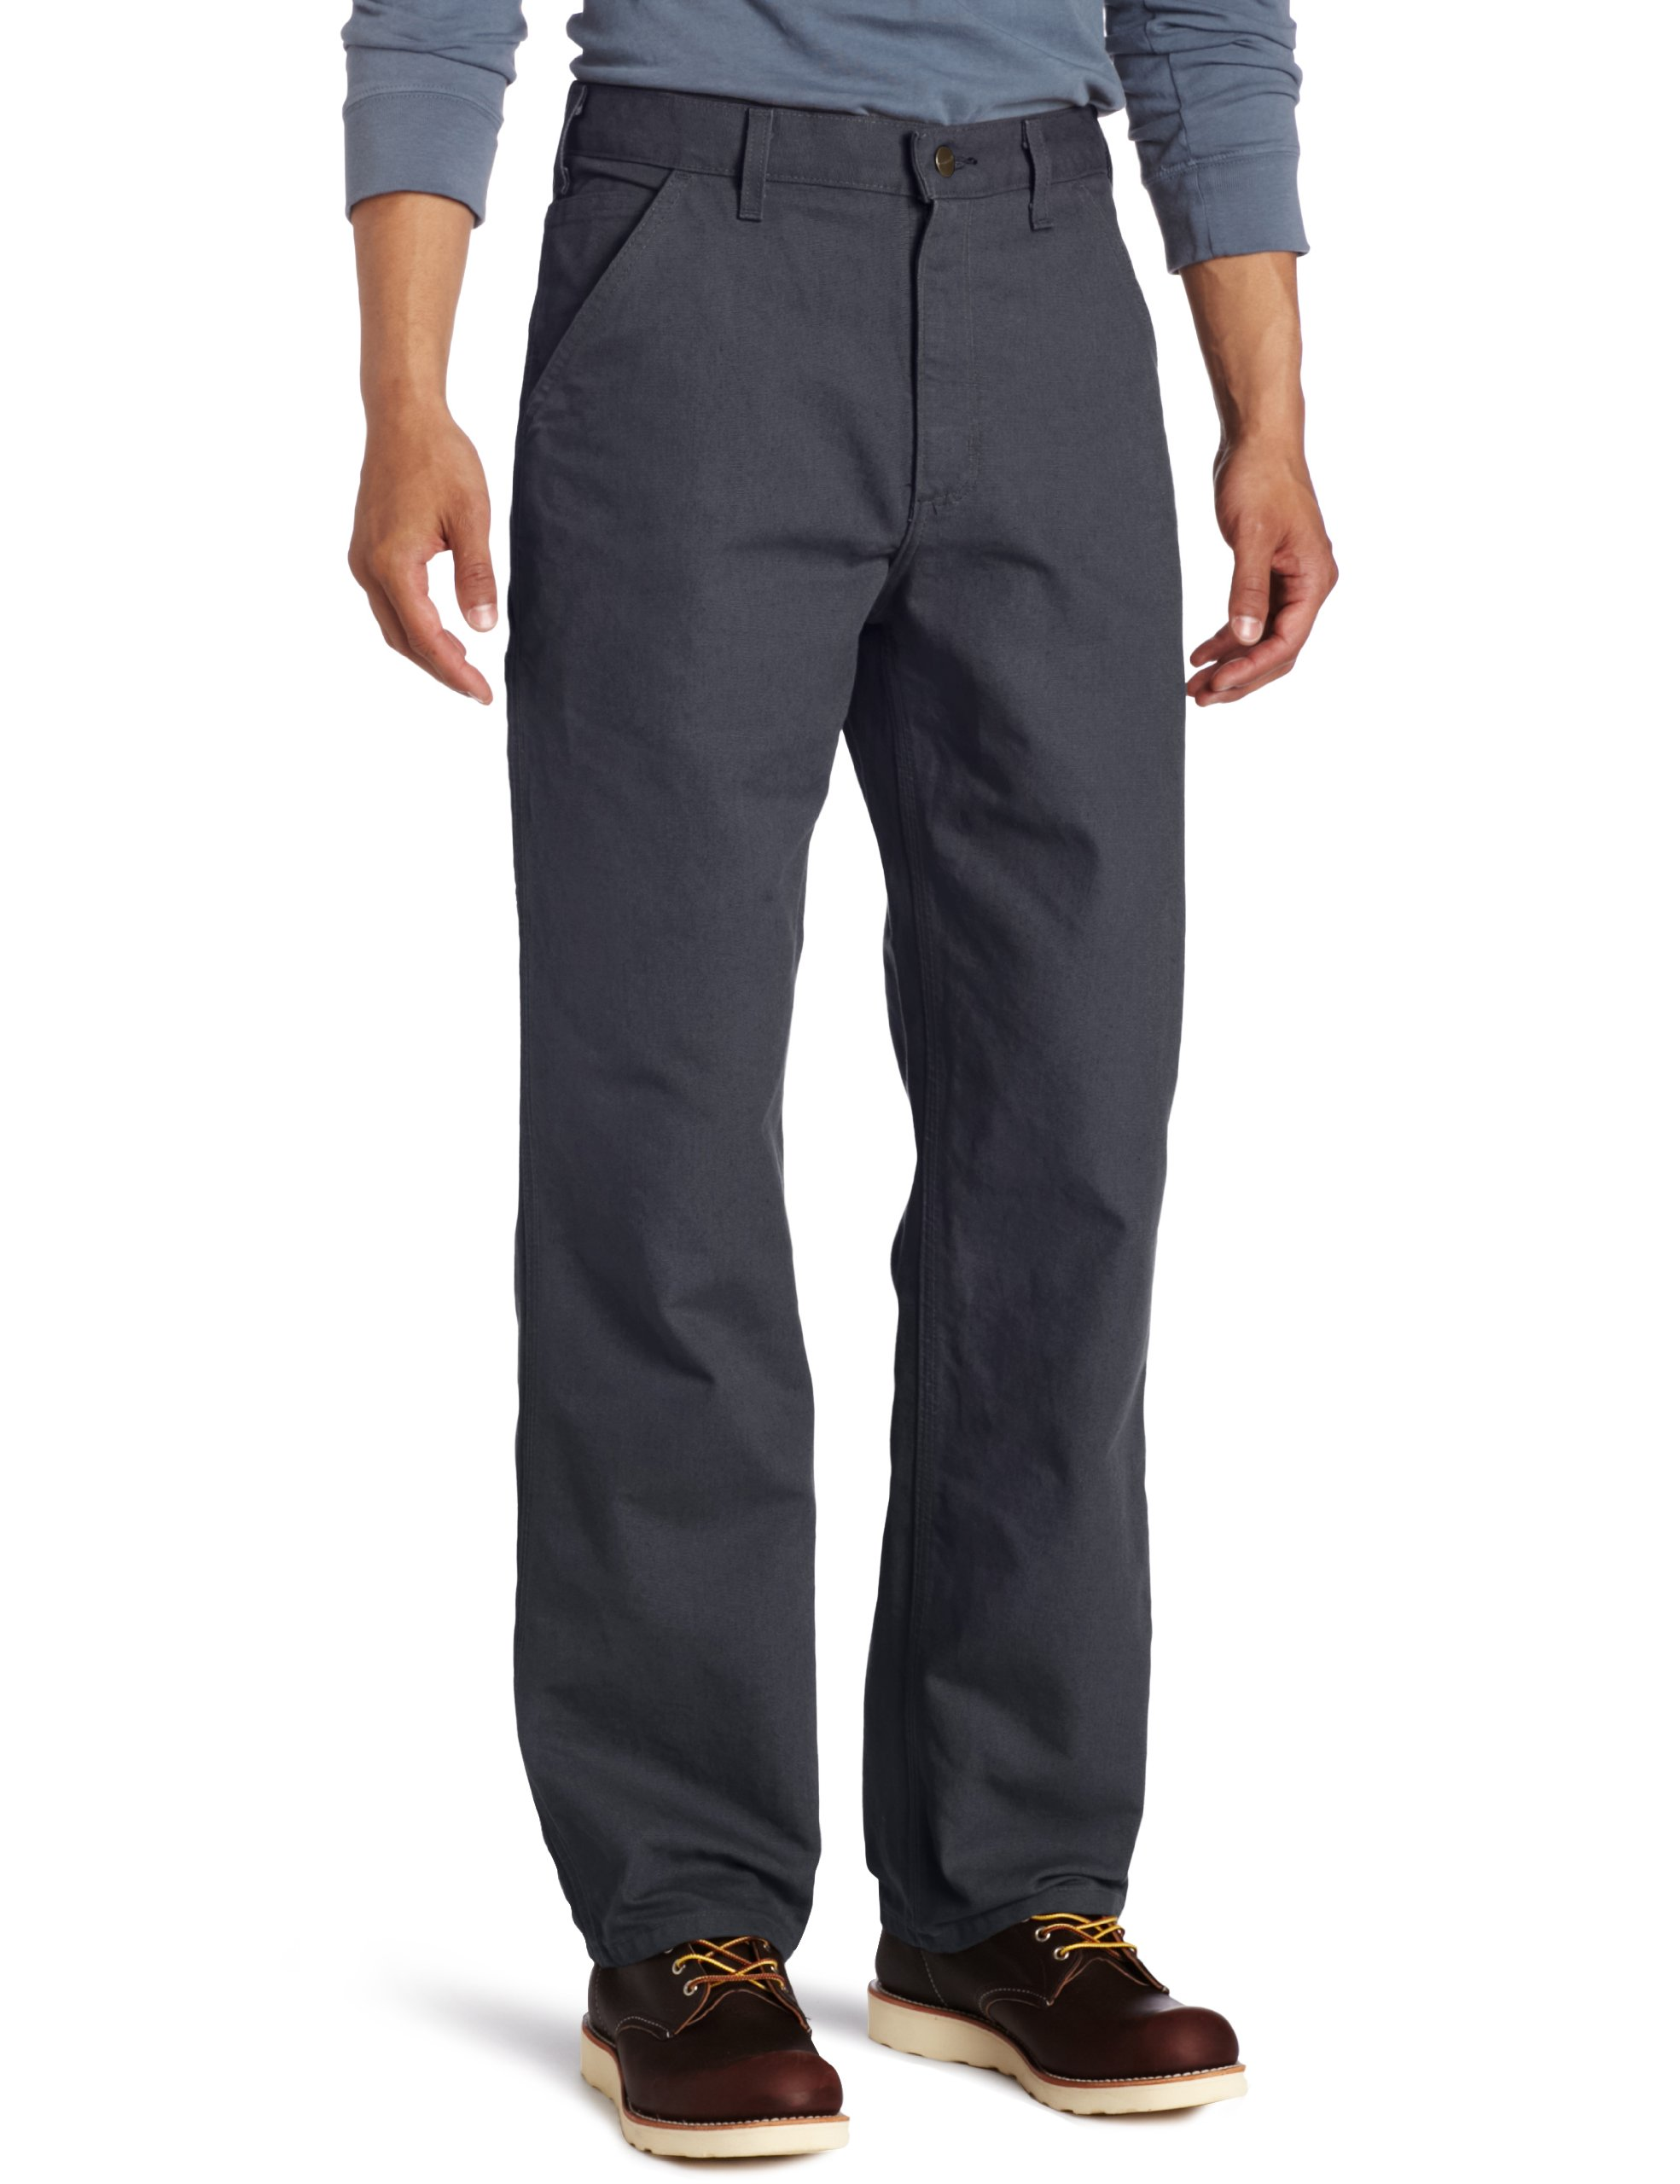 Carhartt Men's Washed Duck Work Dungaree Pant,Petrol Blue,33W x 36L